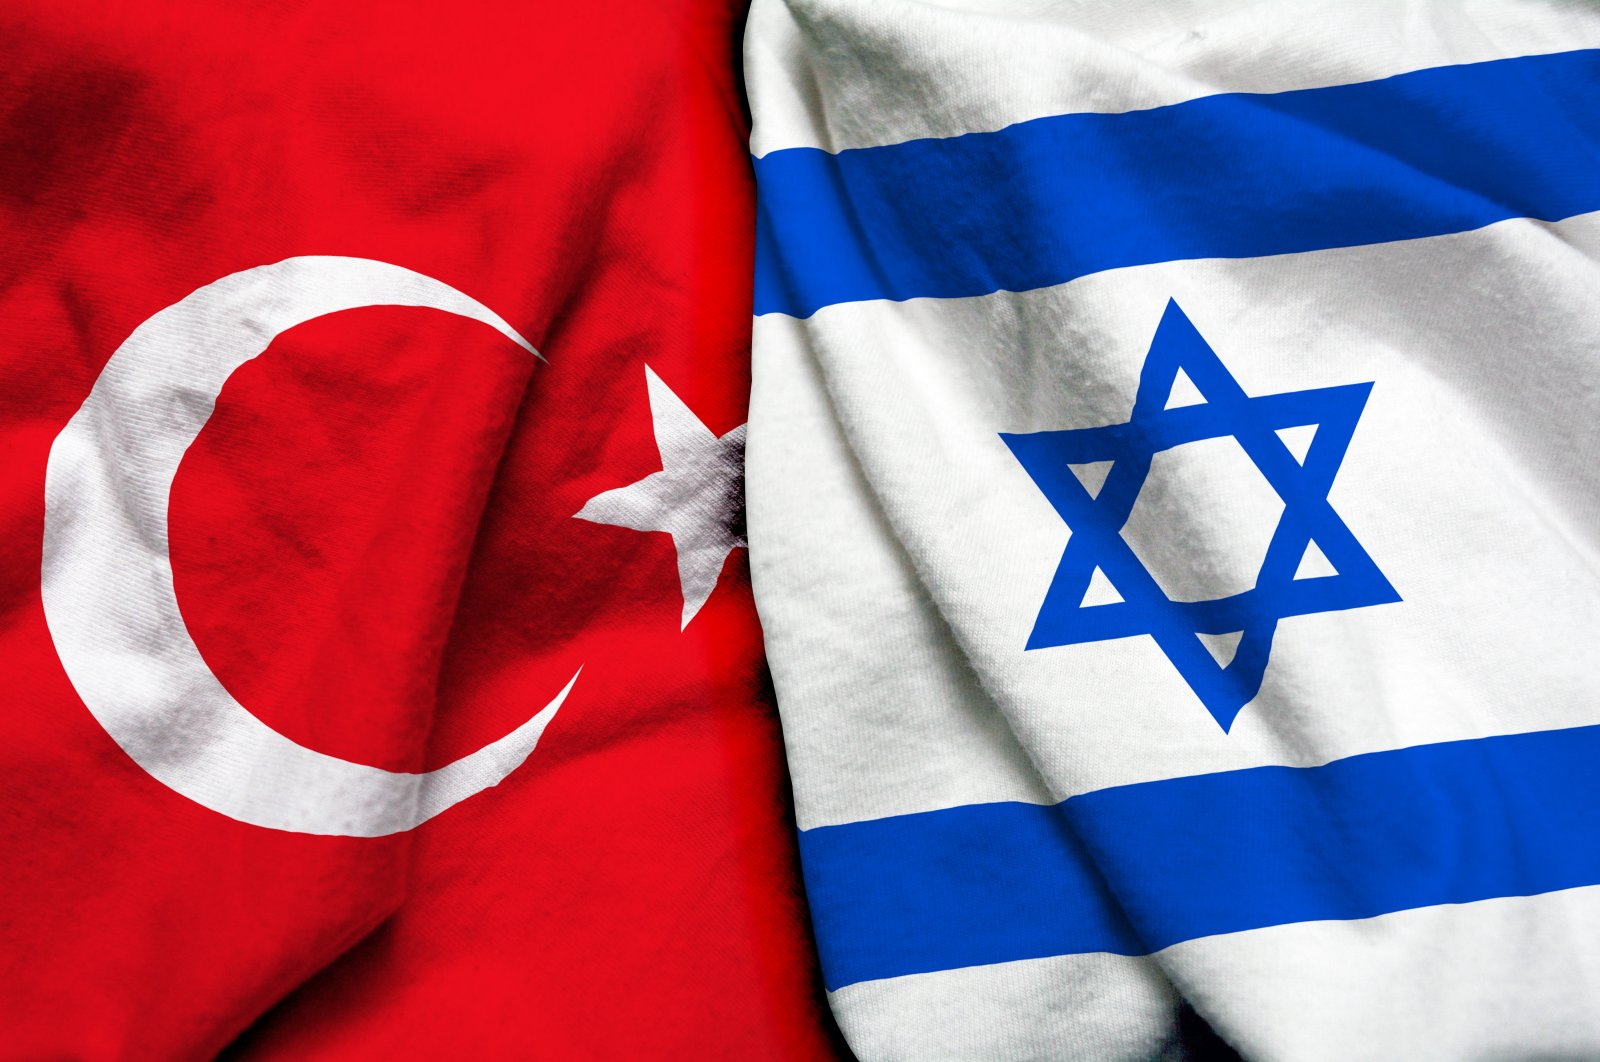 In this illustration photo, the flags of Turkey (L) and Israel are displayed side by side. (Photo by Shutterstock)